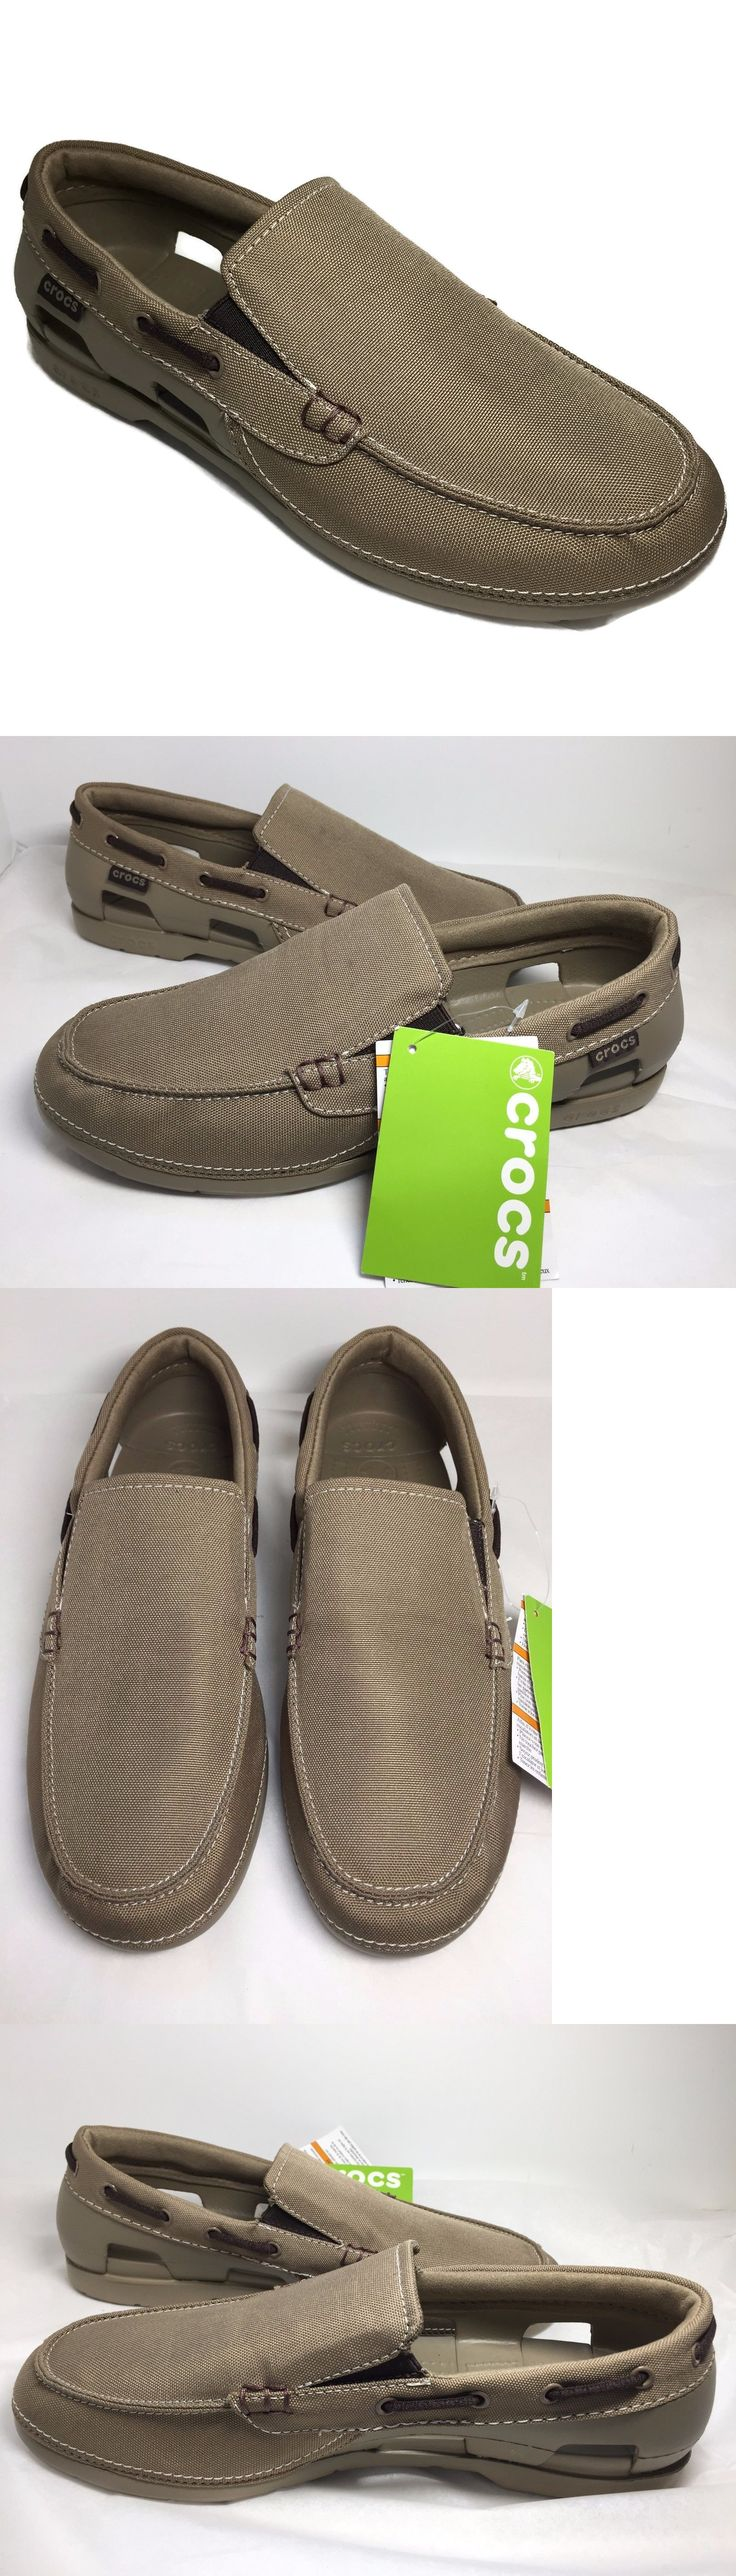 Casual 24087: Crocs Men S Beach Line Slip-On Boat Shoes Size 10 Mens Khaki -> BUY IT NOW ONLY: $65 on eBay!